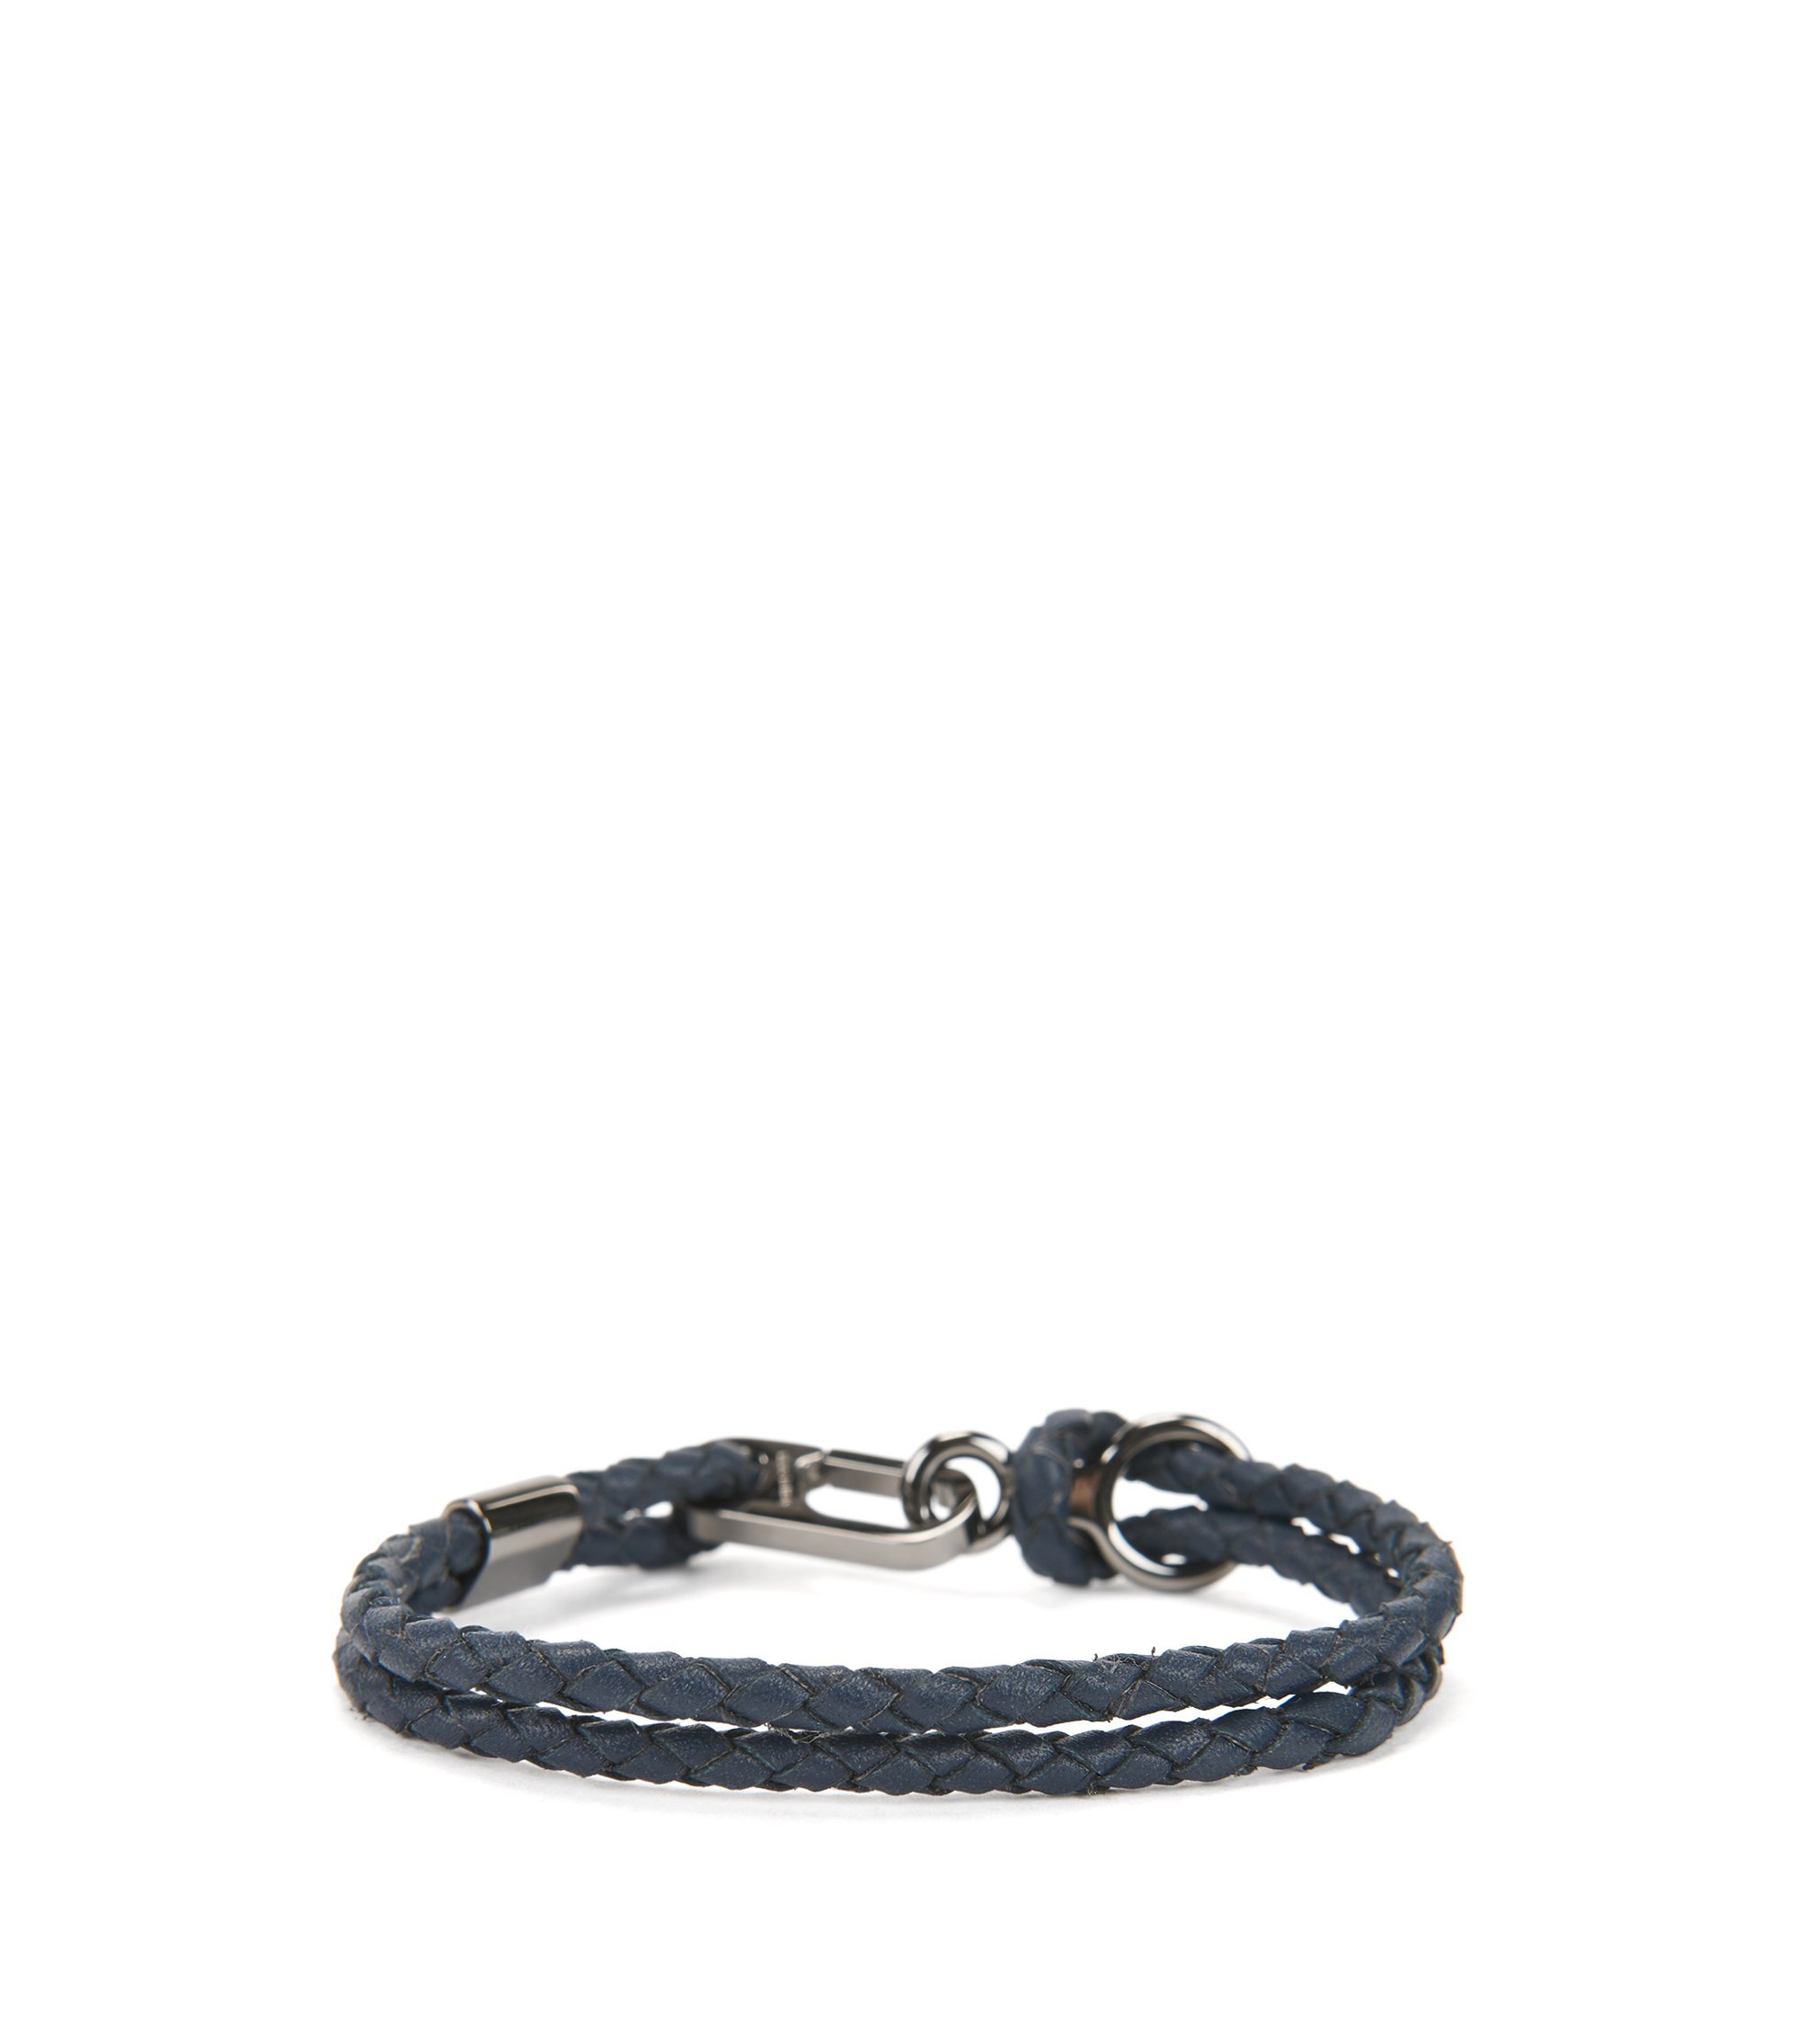 Double braided calf-leather bracelet with carabiner closure, Dark Blue